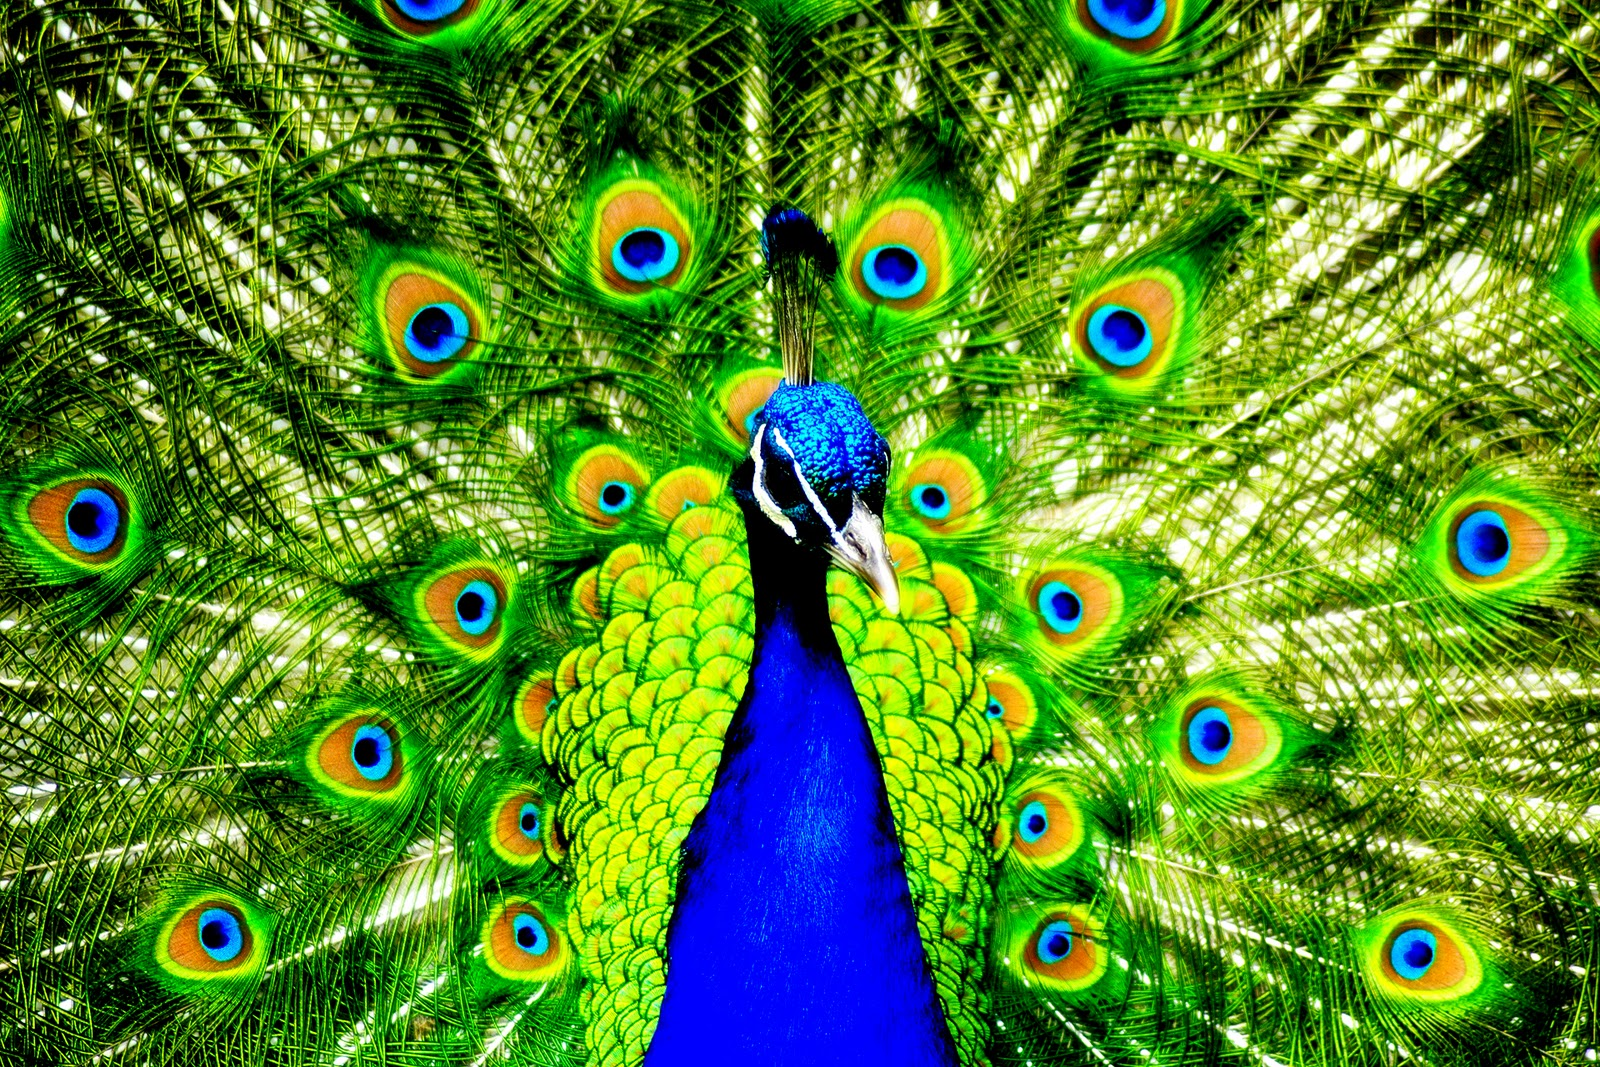 Peacock wallpapers - photo#6